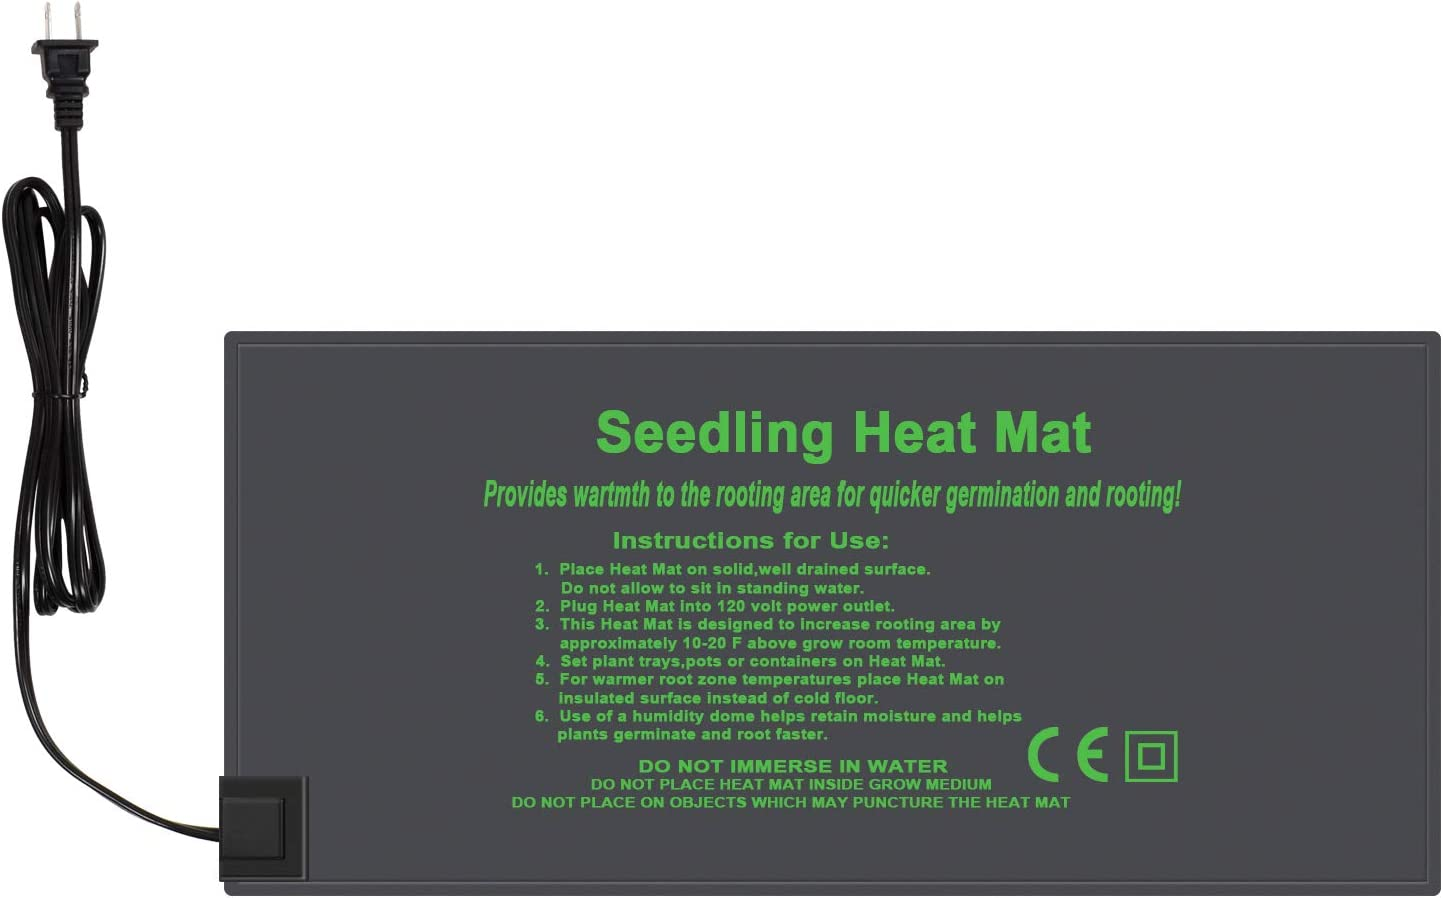 KORAM Seedling Heat Mat Durable Waterproof Hydroponic Heating Pad Warm Germination Station Heat Mat for Indoor Home Gardening Seed Starter 10 x20